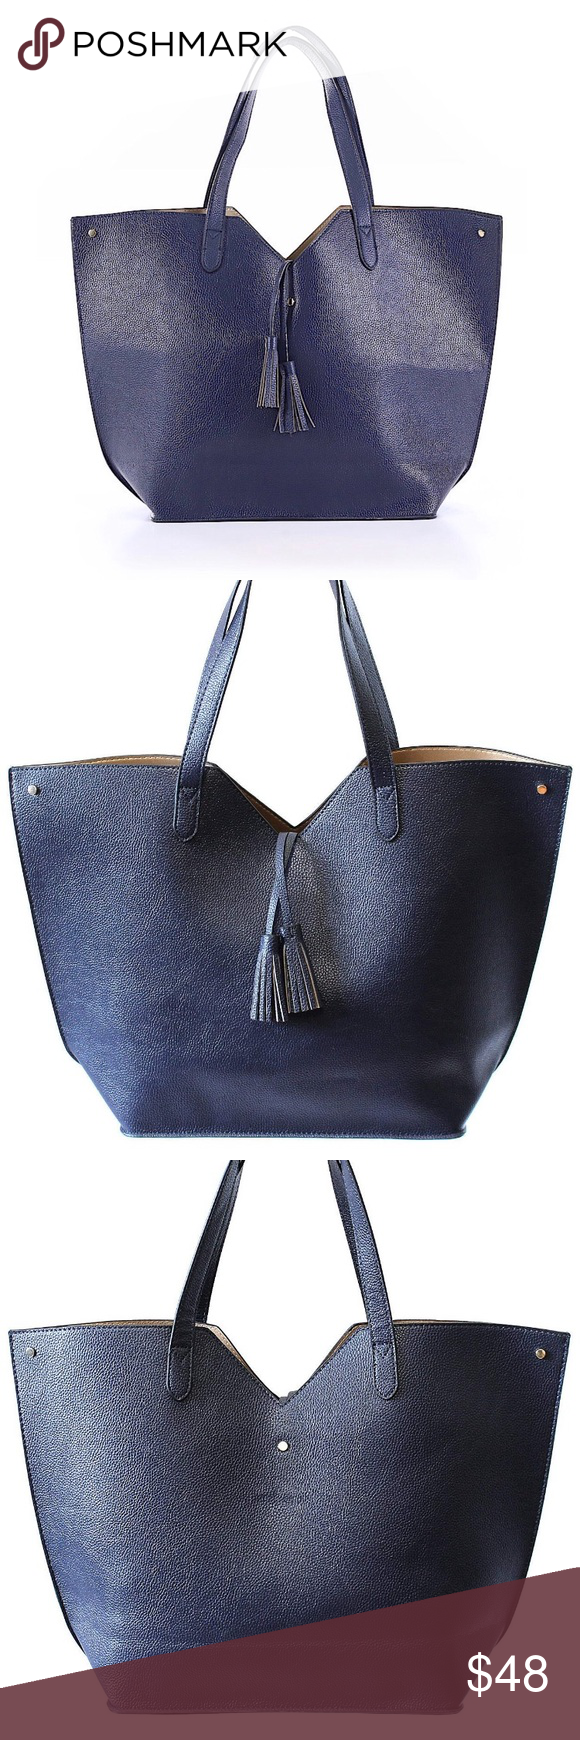 Neiman Marcus Navy Faux Leather Tote W Tassels Neiman Marcus Handbags Neiman Marcus Bags Neiman Marcus